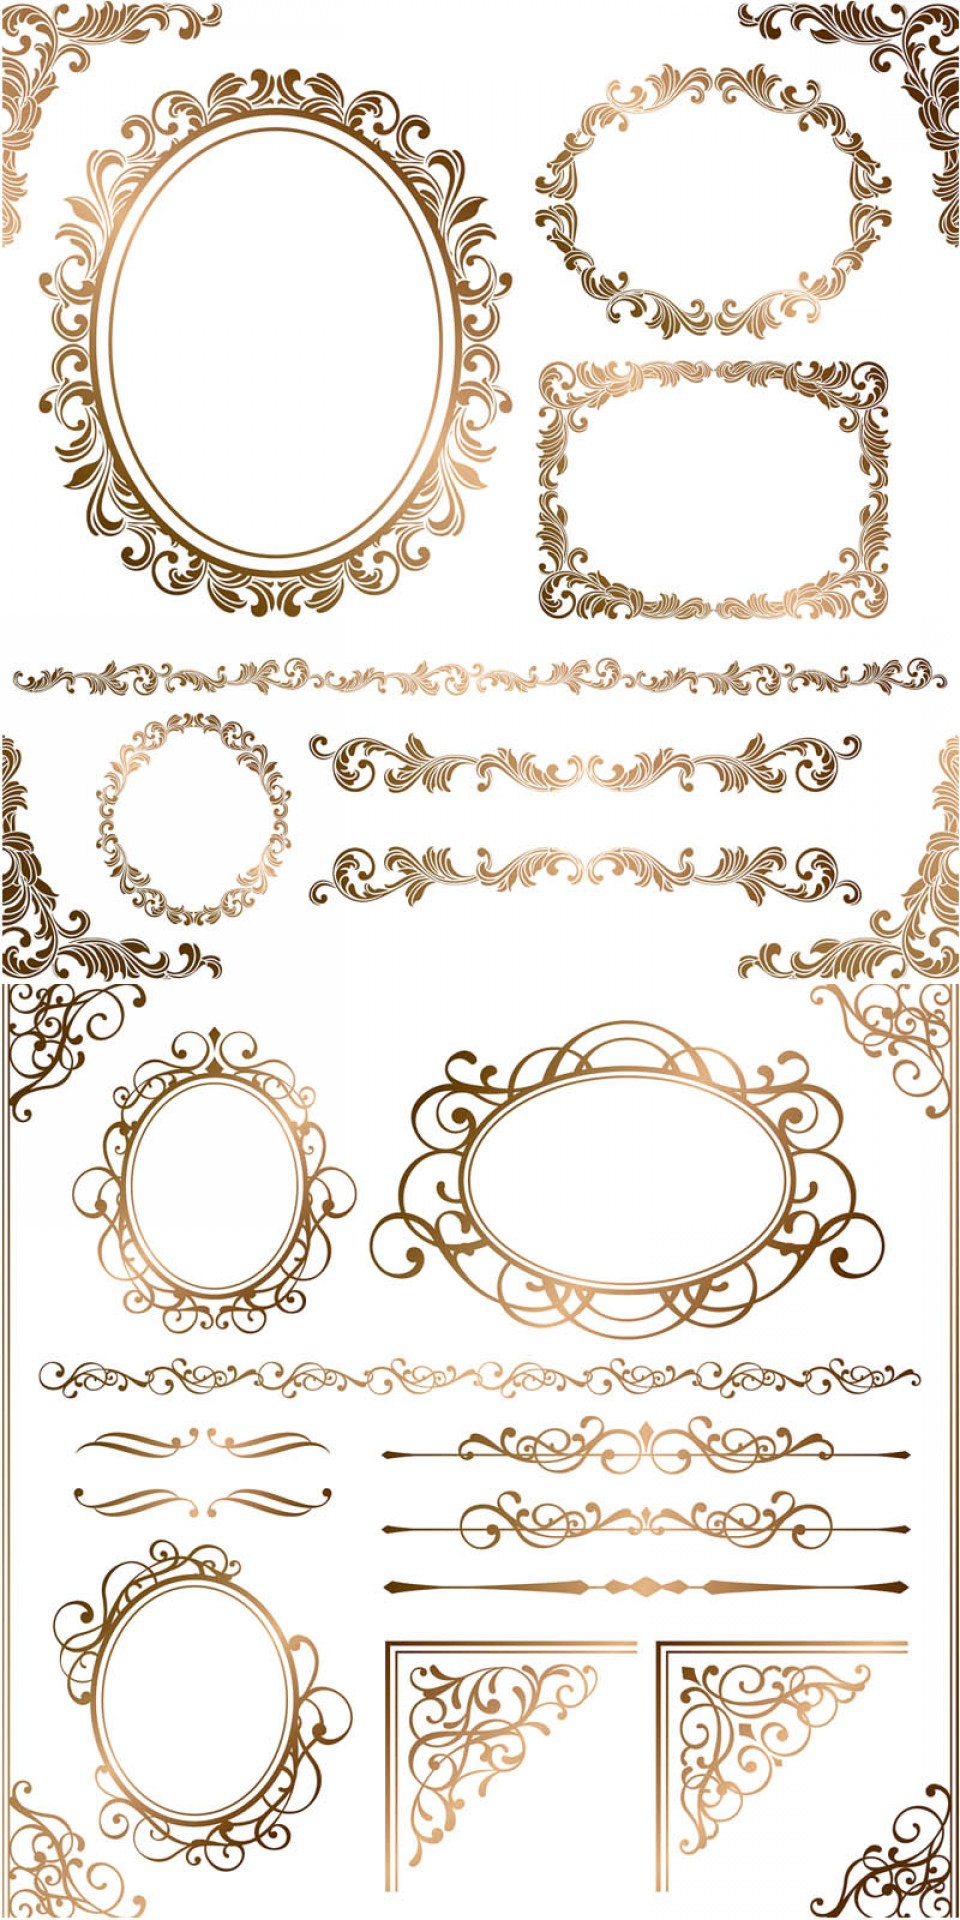 Gold Ornate Borders Vector: Baroque Floral Frames Corners And Borders Vector